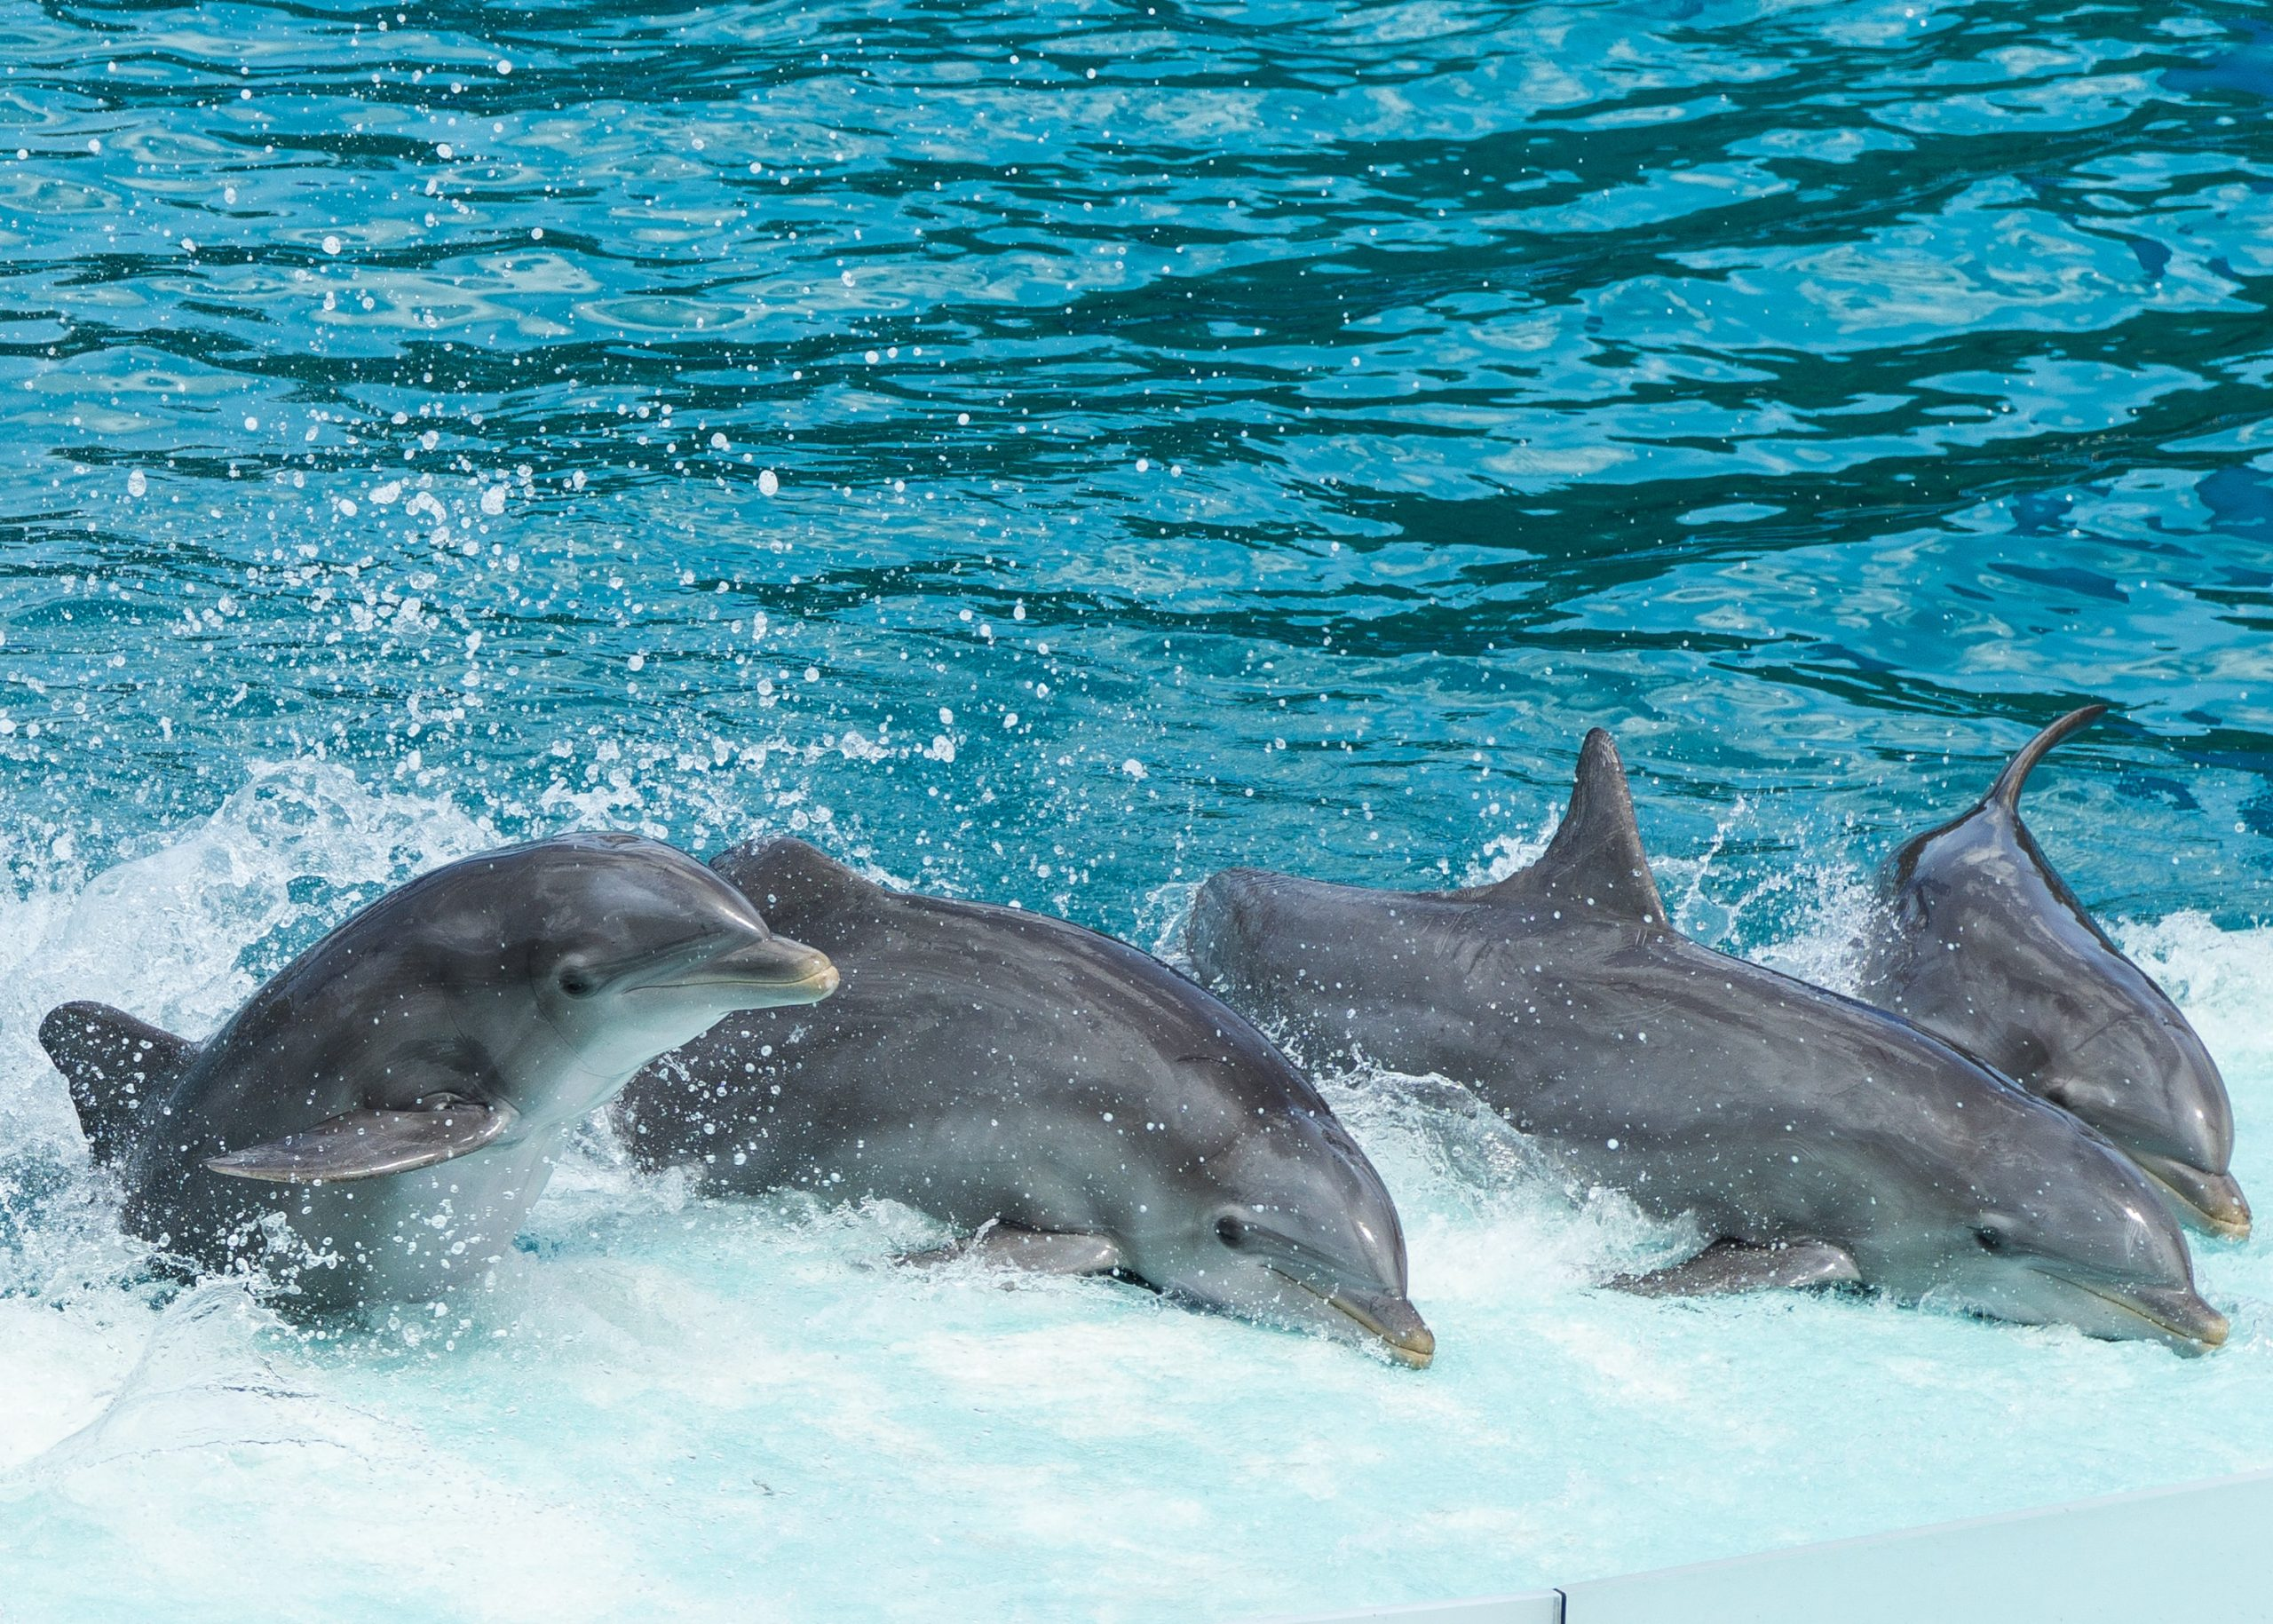 4 dolphins outside the water